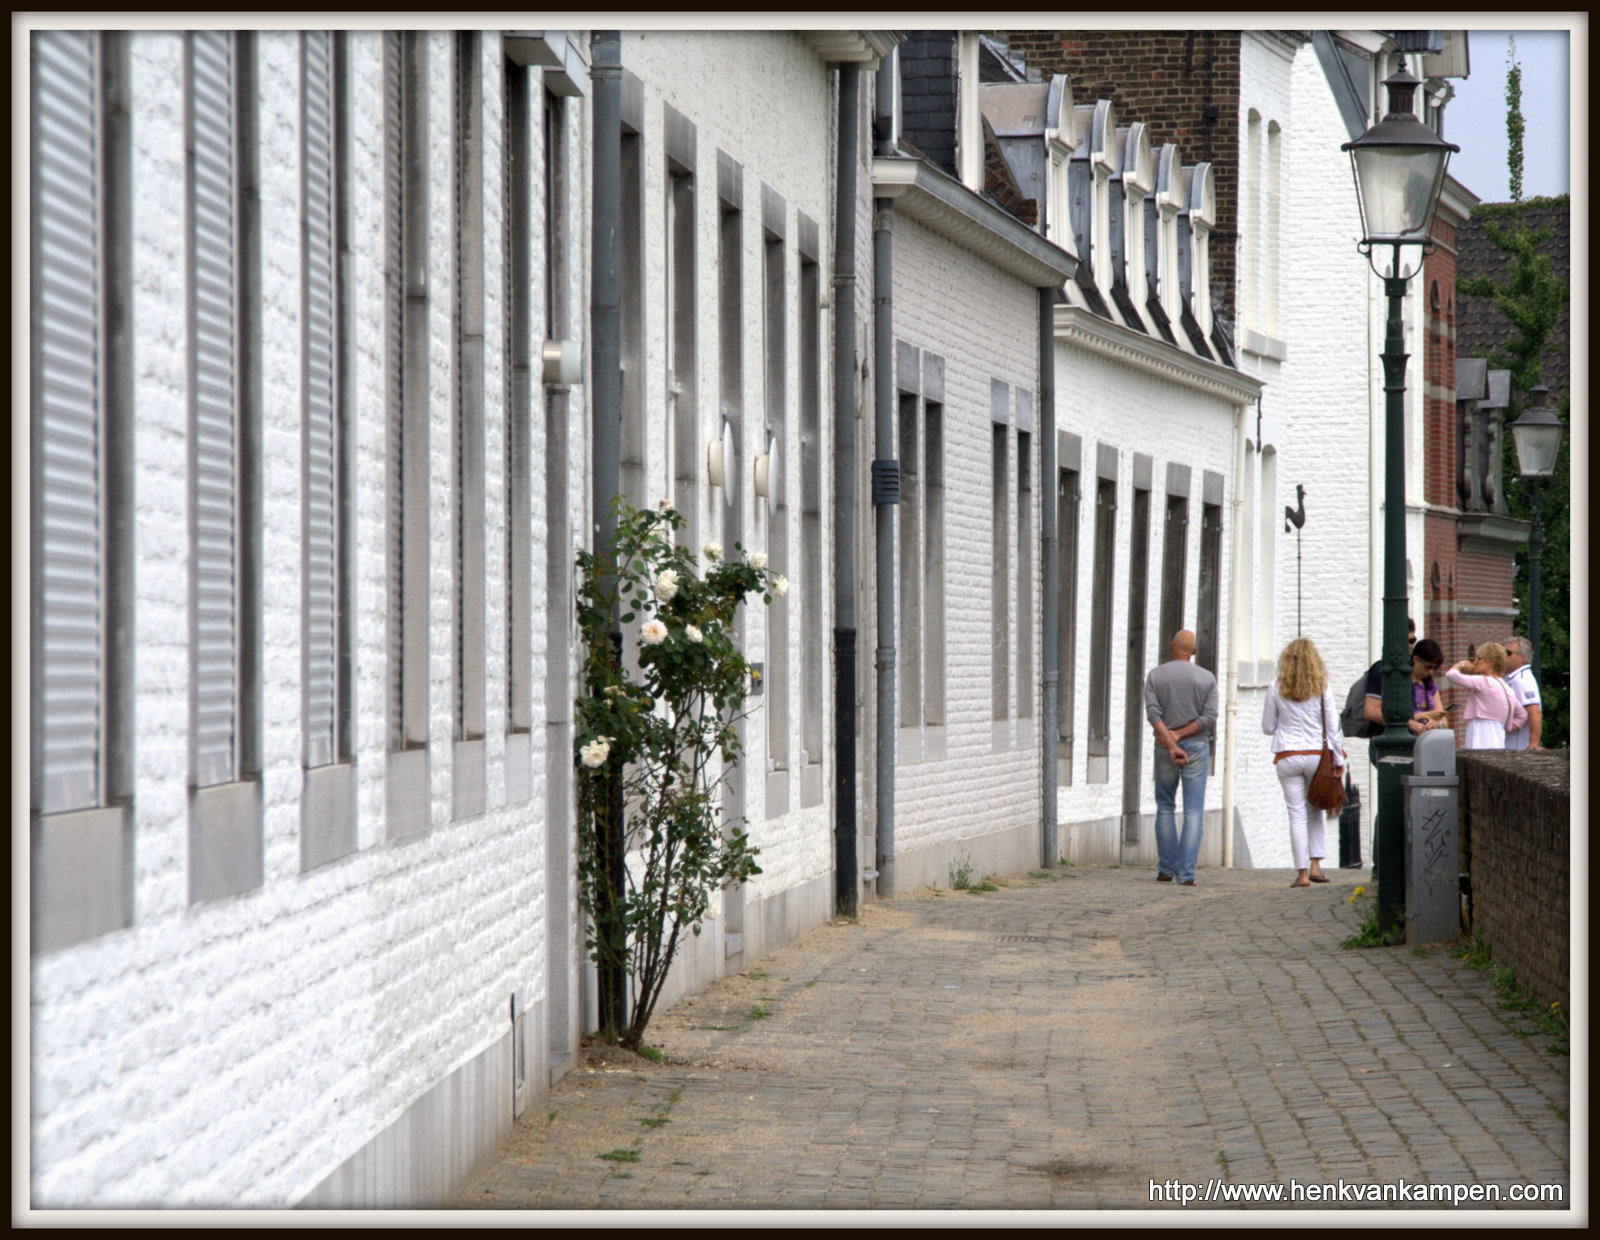 City wall (Onze Lieve Vrouwe wal)